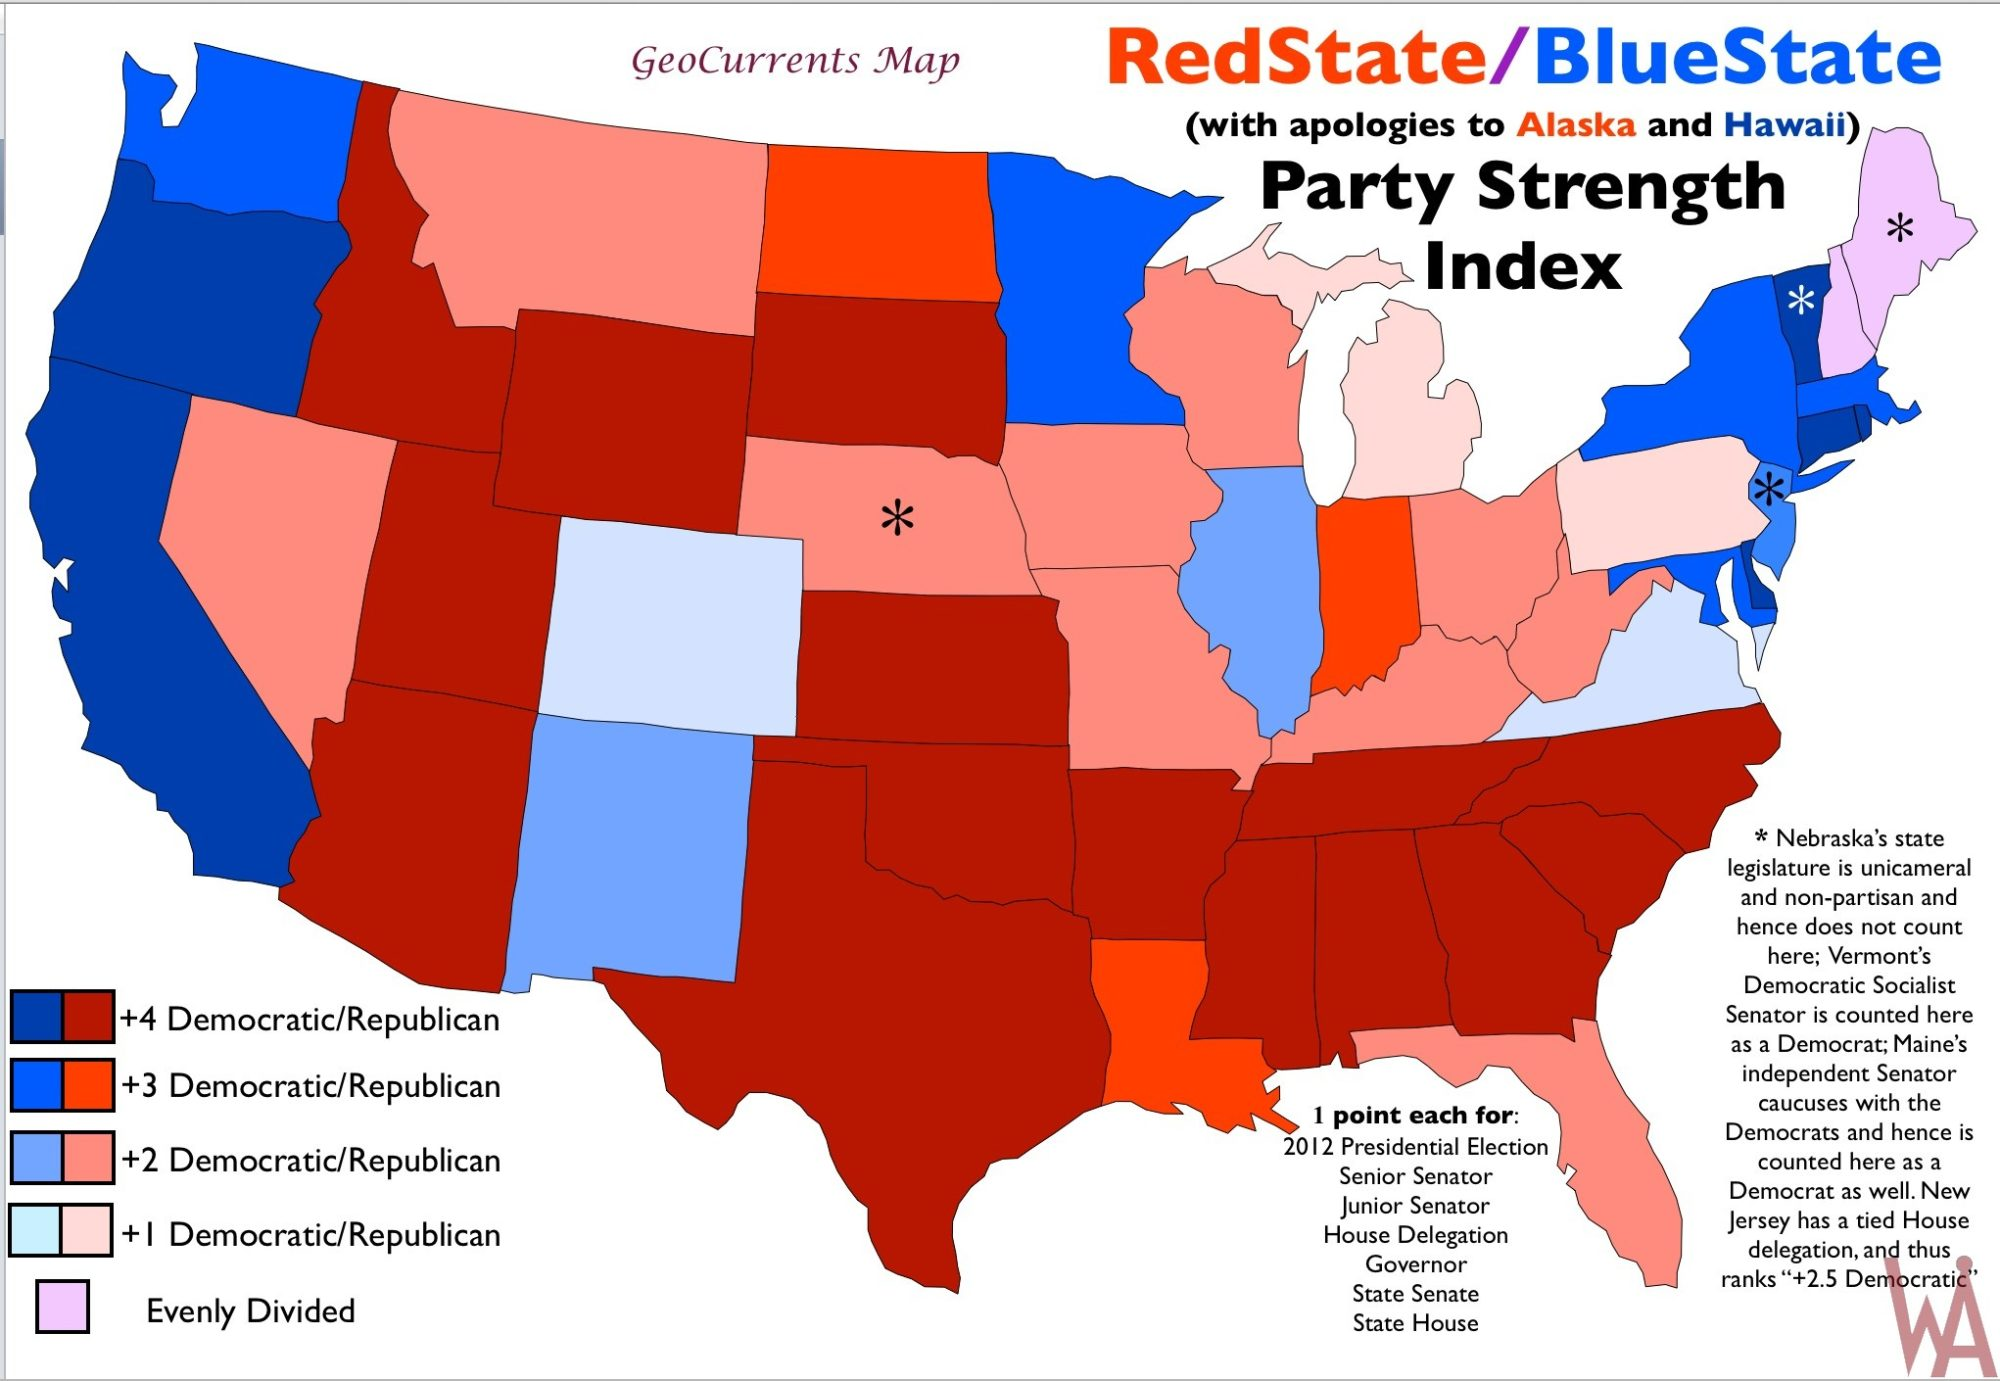 Political Party Strength Index Map of the USA